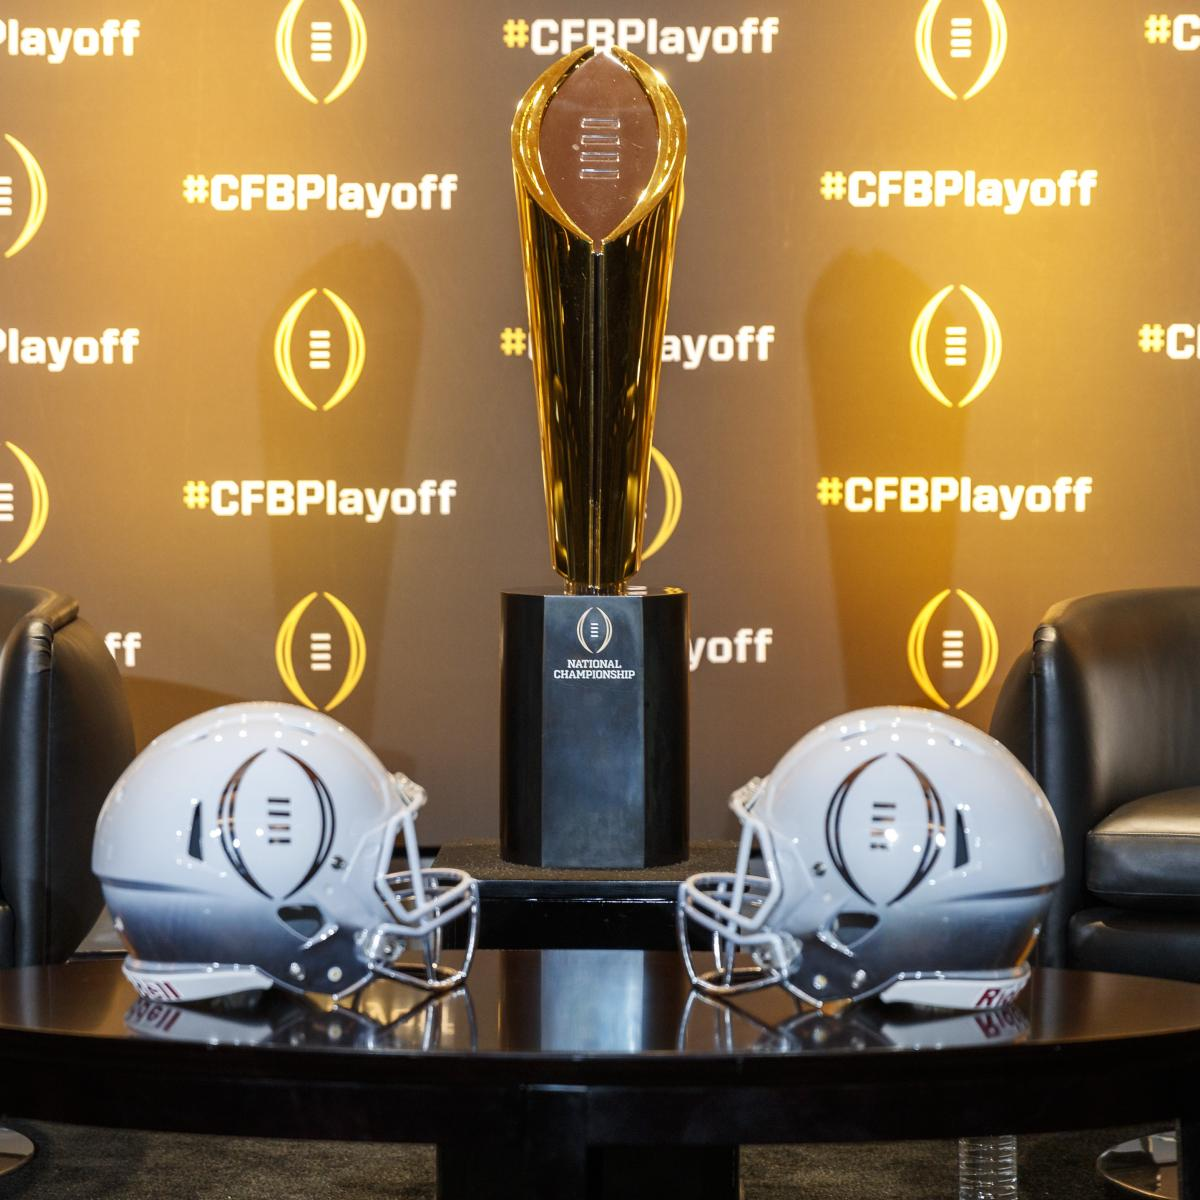 for Schedule Winning Predictions and Games Bowl 2018-19: